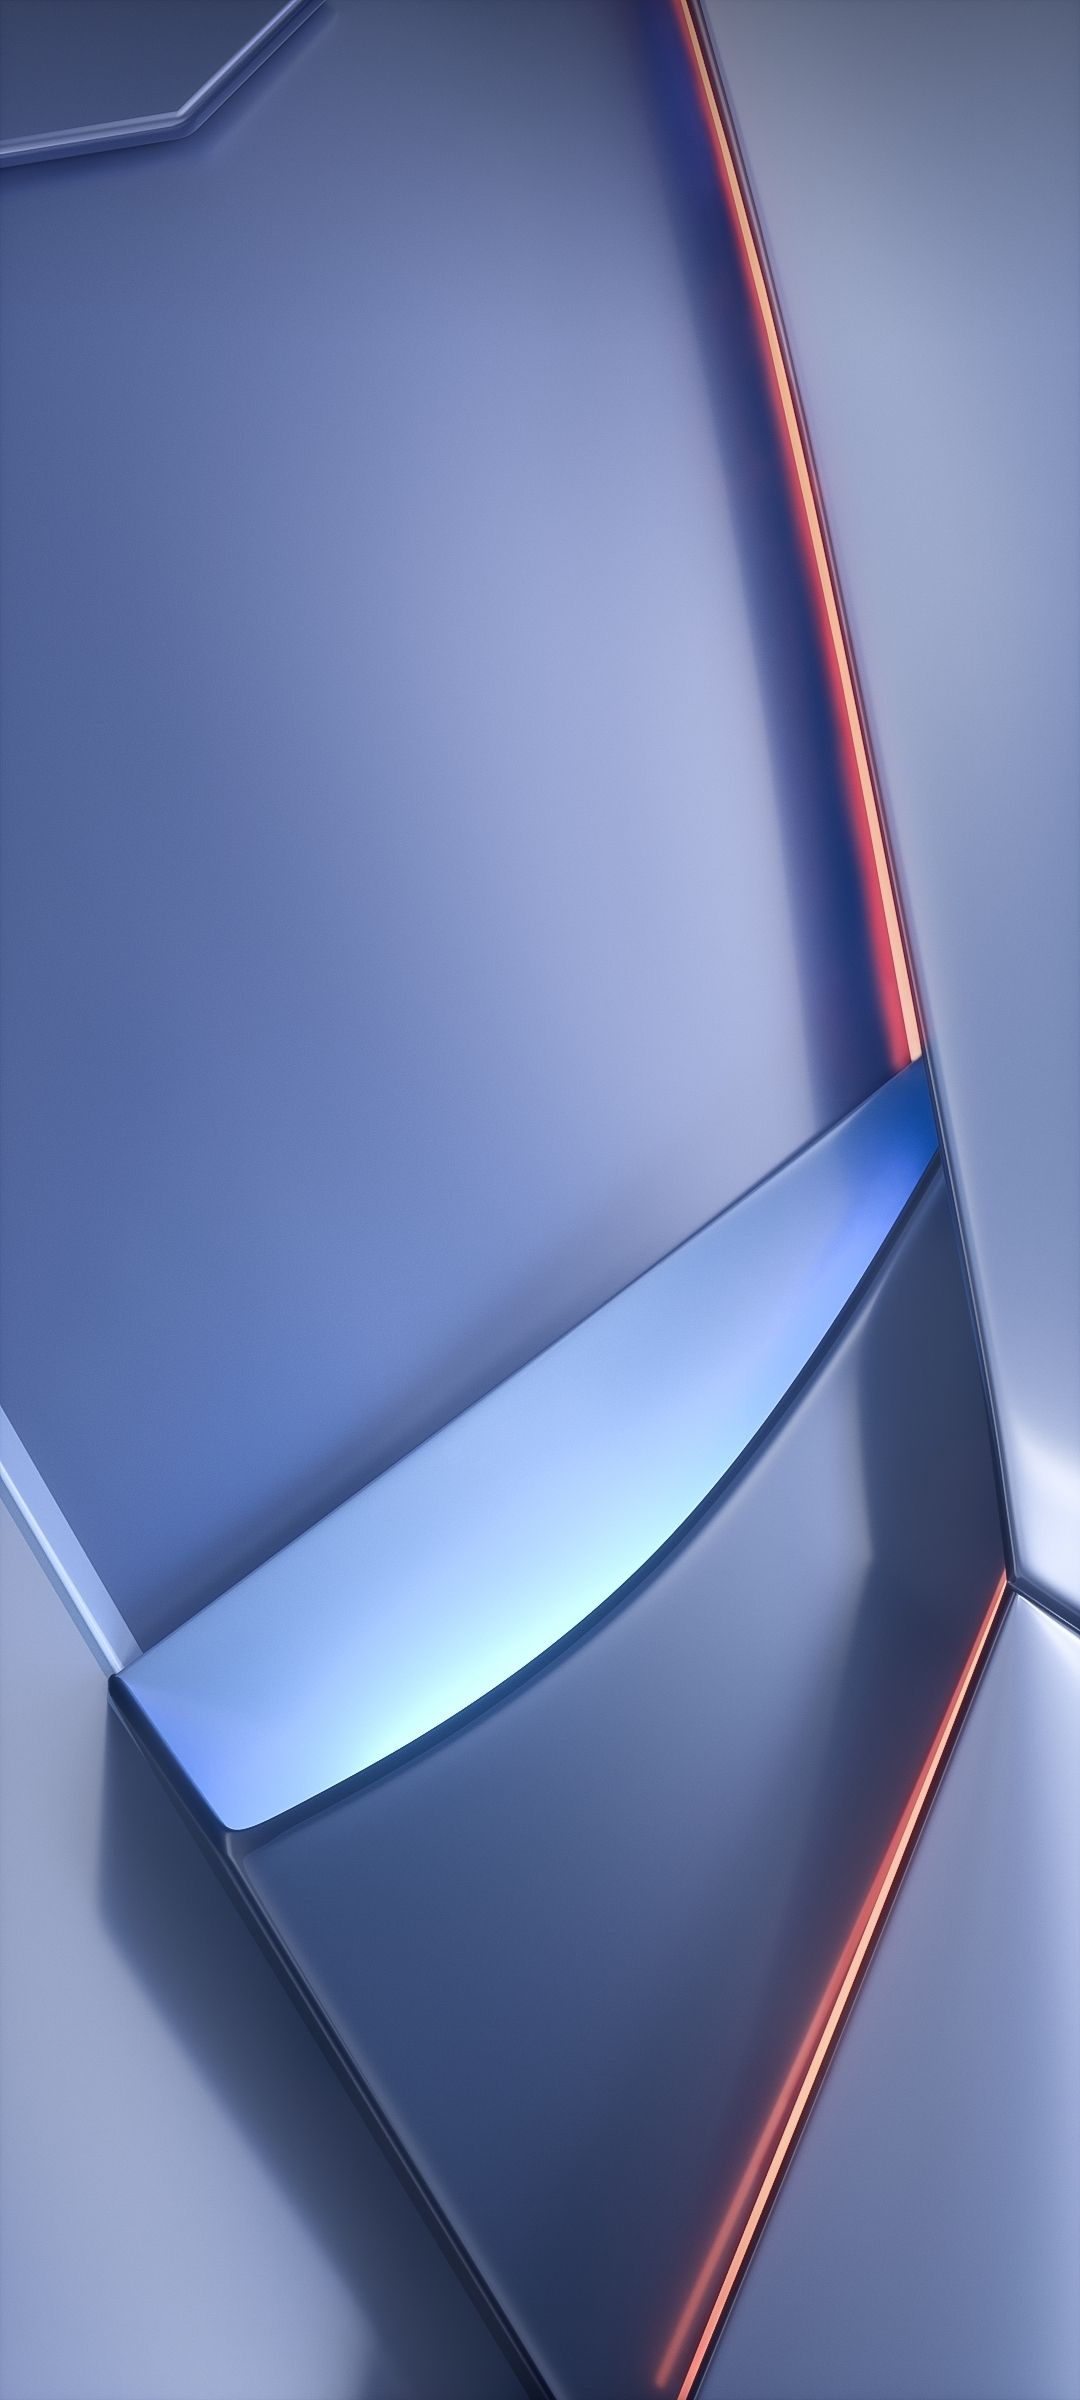 Oppo Ace 2 Wallpaper Ytechb Exclusive Stock Wallpaper Galaxy Wallpaper Wallpaper